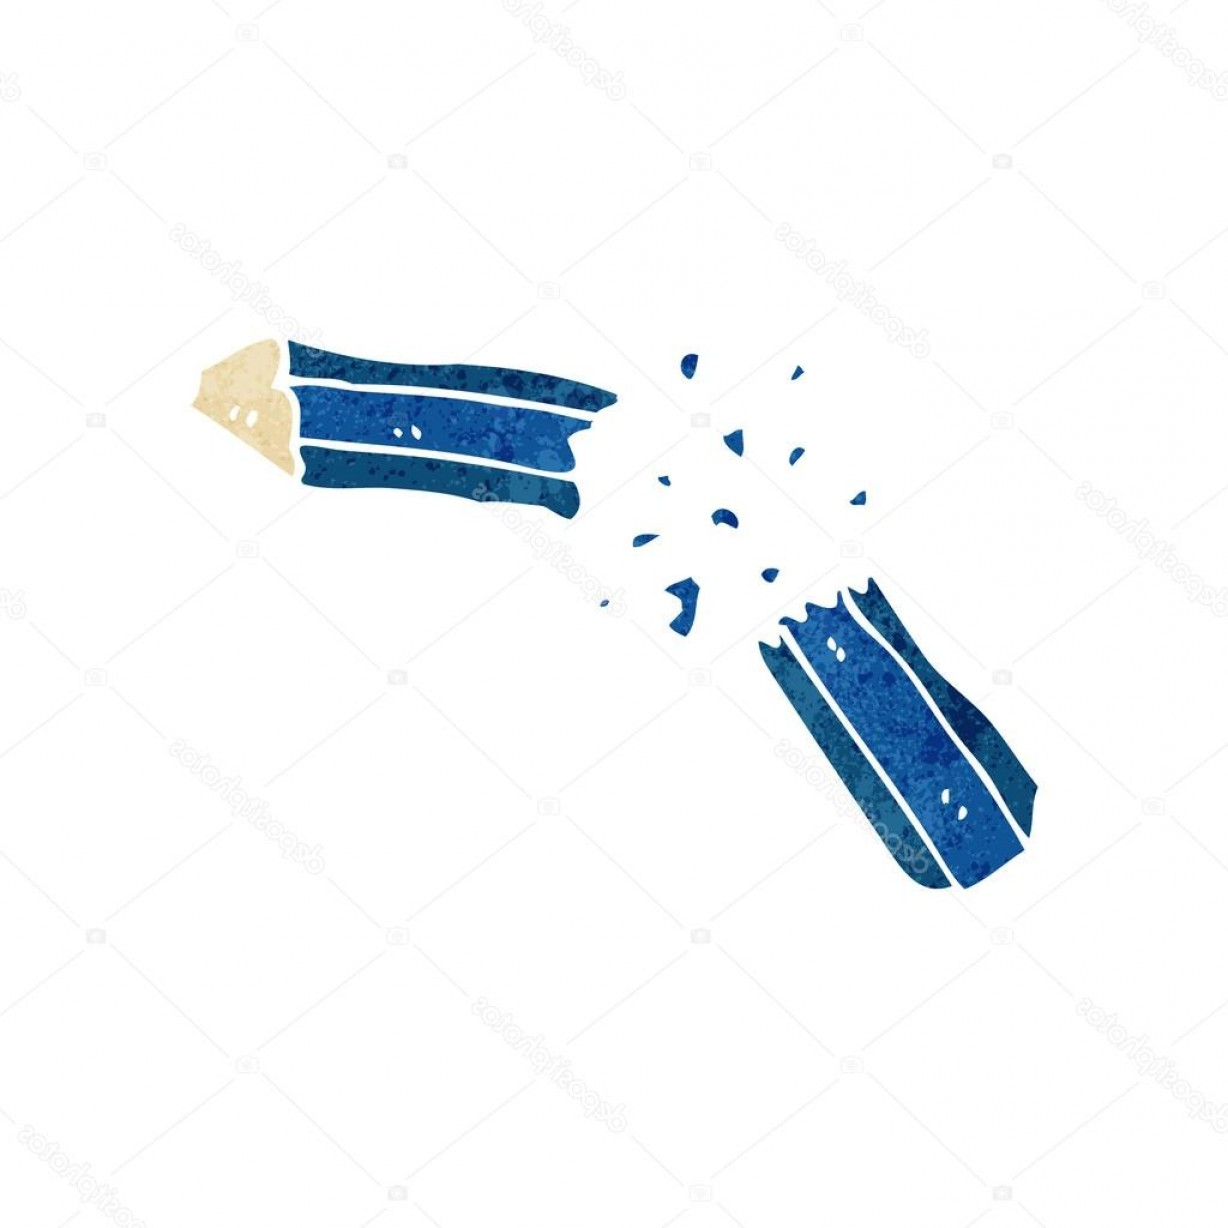 Broken Pencil Vector: Stock Illustration Retro Cartoon Broken Pencil